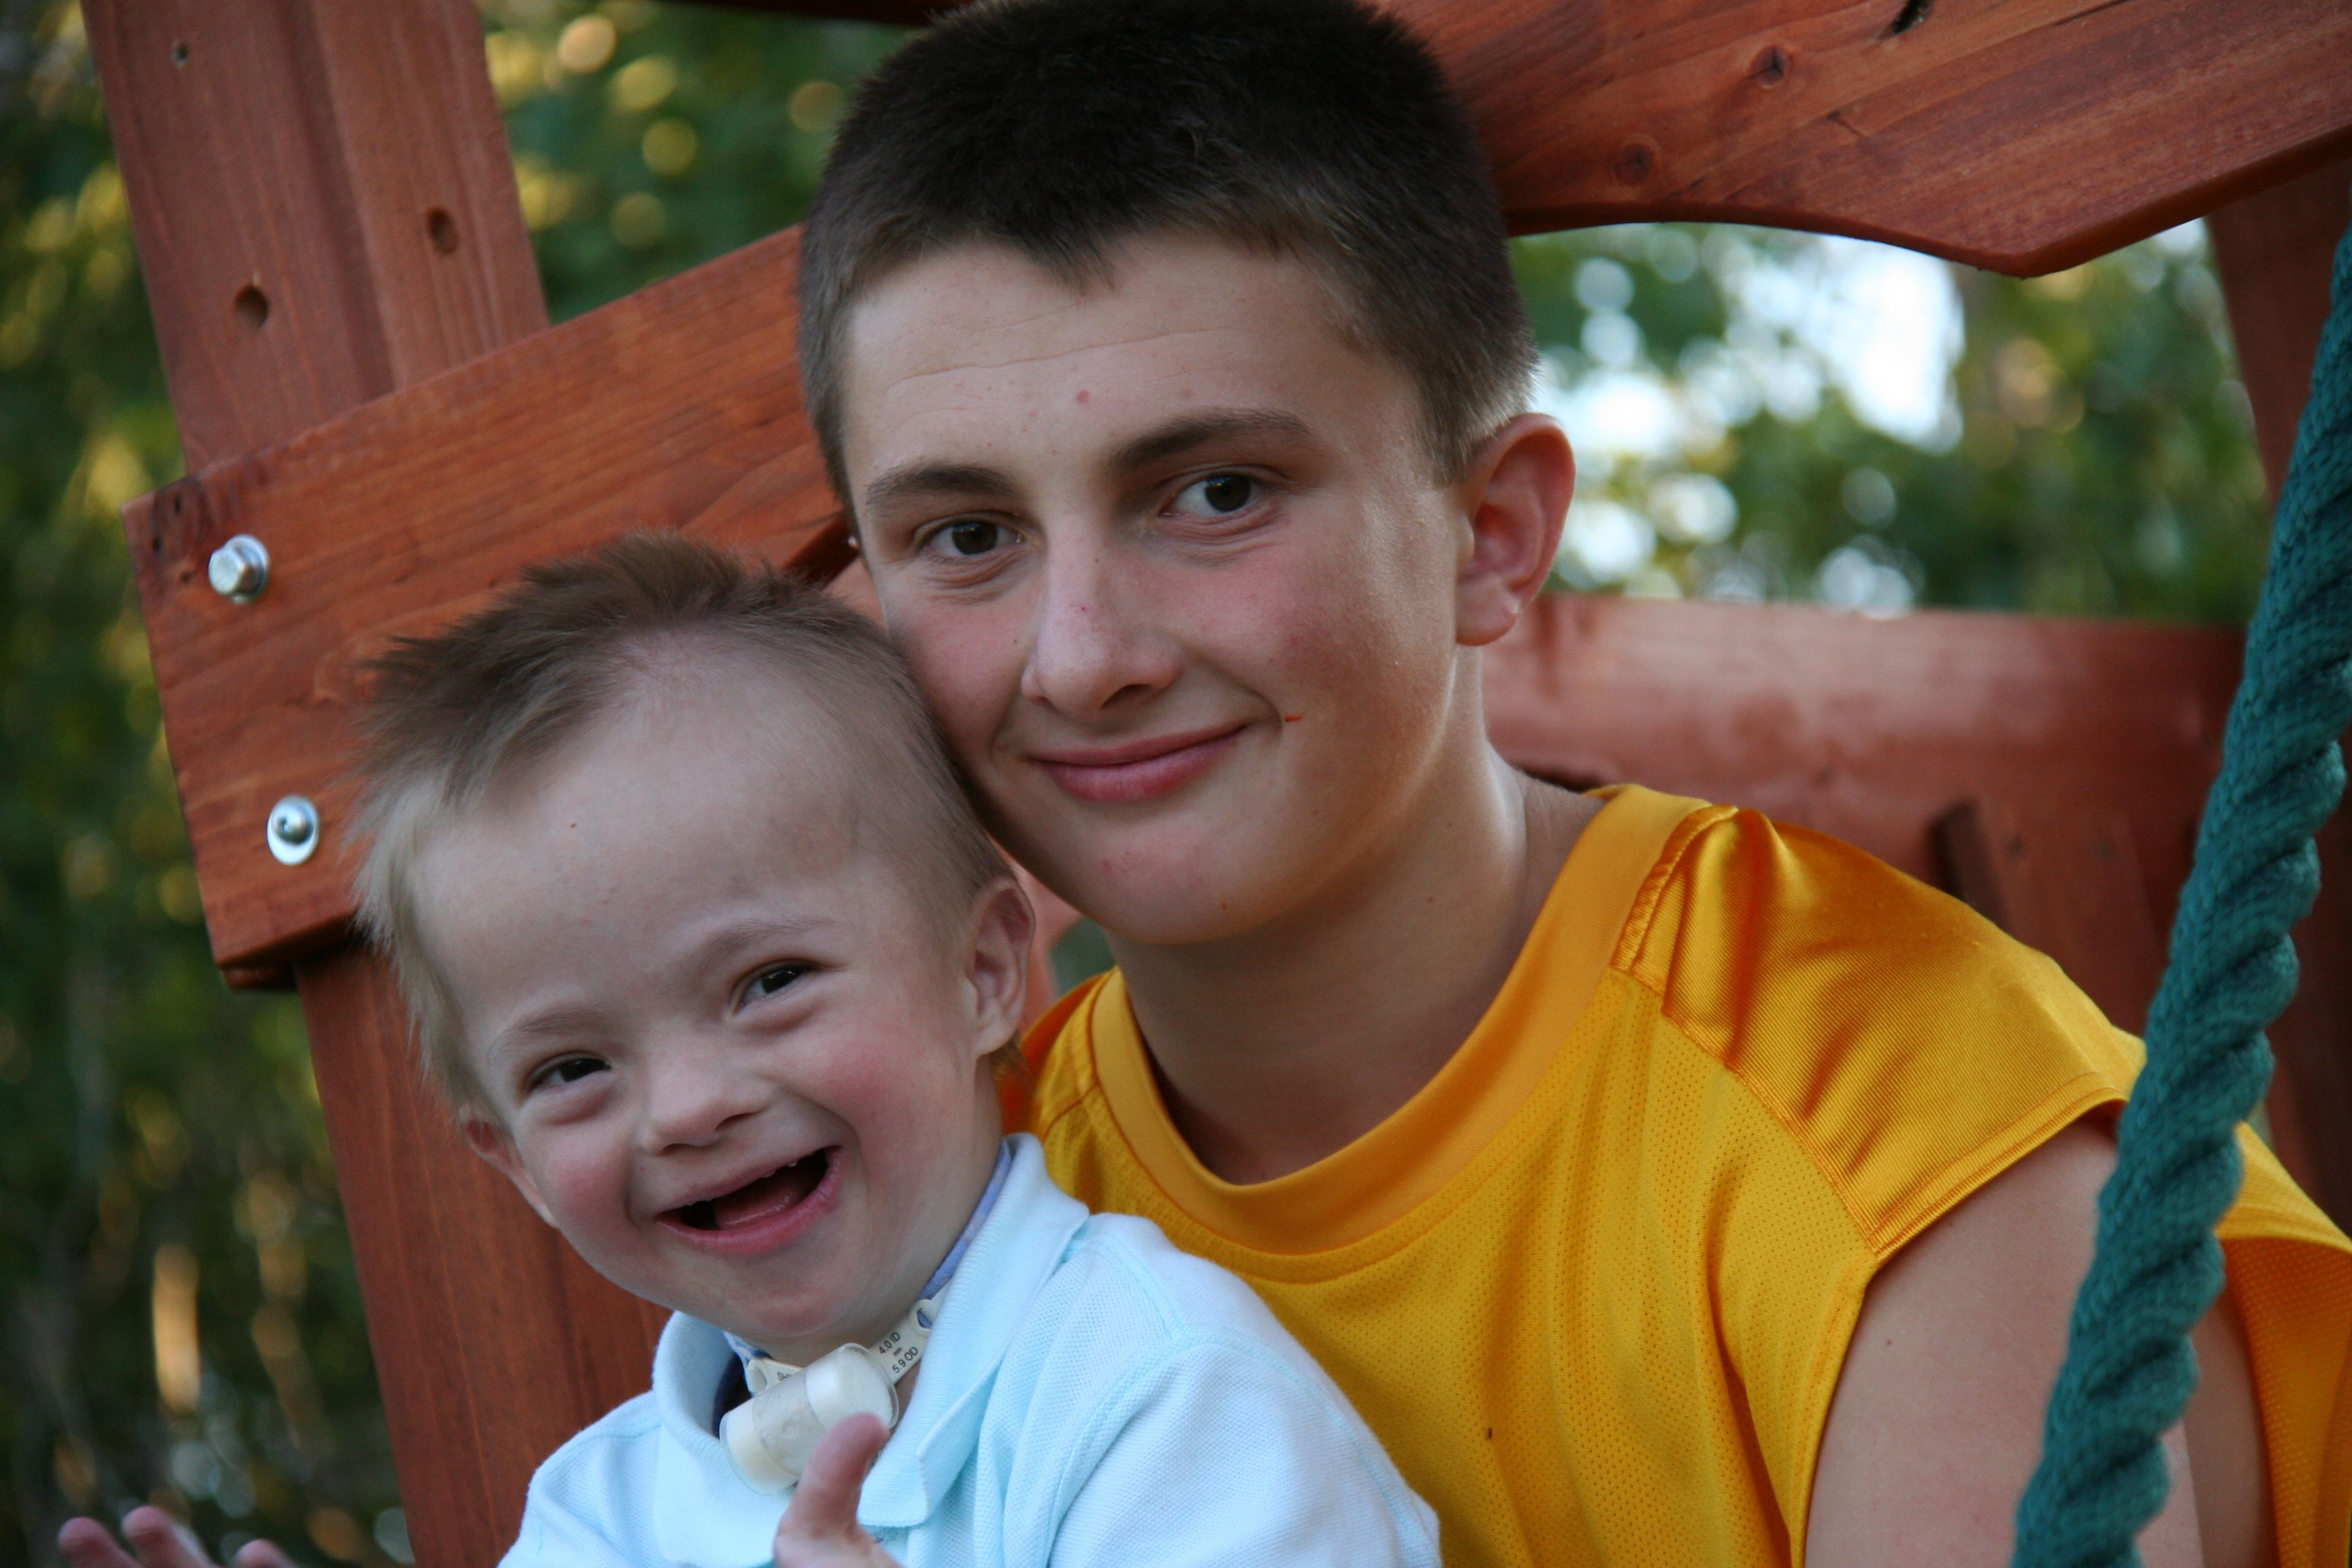 Down Syndrome Is A Naturally Occurring Chromosome